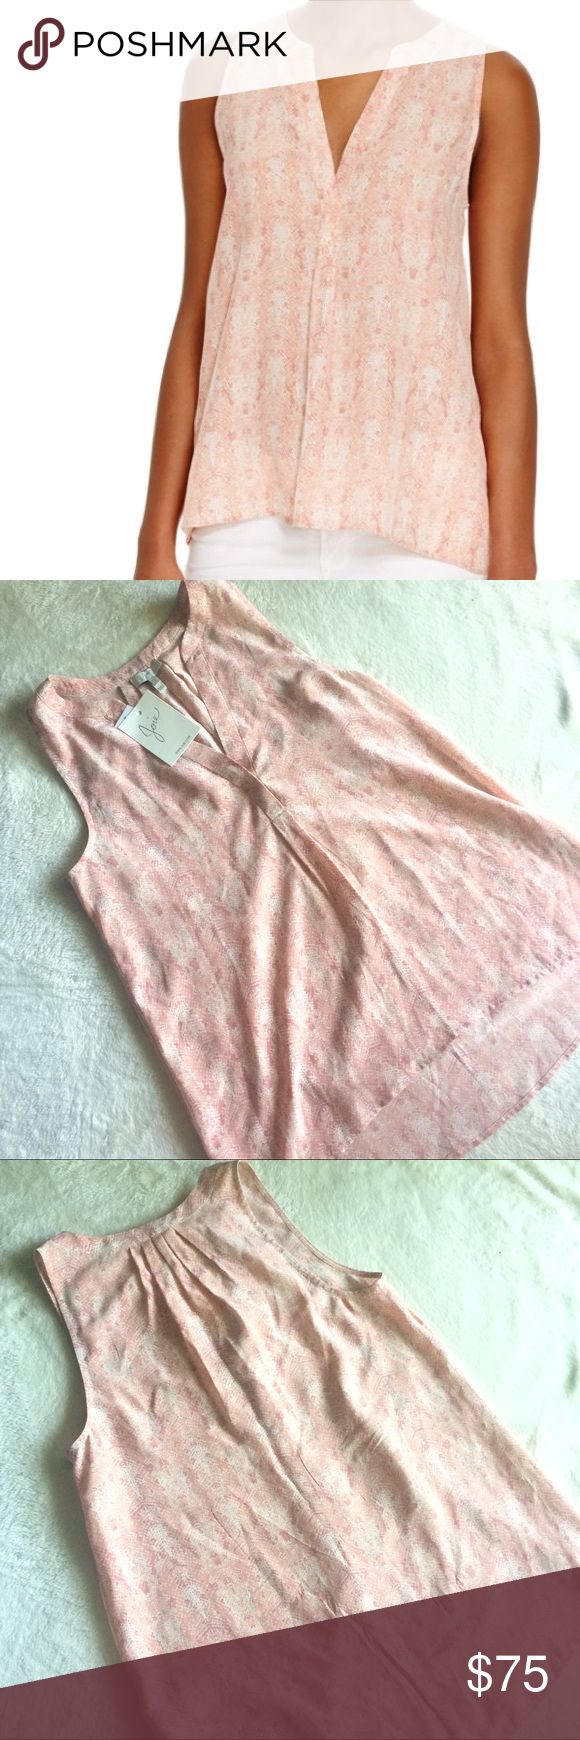 Joie Aruba Printed Silk Tank NWT Joie Aruba Printed Silk Tank. Joie's luxe take on the warm-weather essential features an abstract snakeskin print in a feminine peach palette, crafted from silk that glides fluidly. Retails for $188 Details: 100% Silk Notched round neck with concealed button closure Sleeveless, allover snakeskin print Pleated back detail, high/low hem with rounded back Joie Tops Camisoles